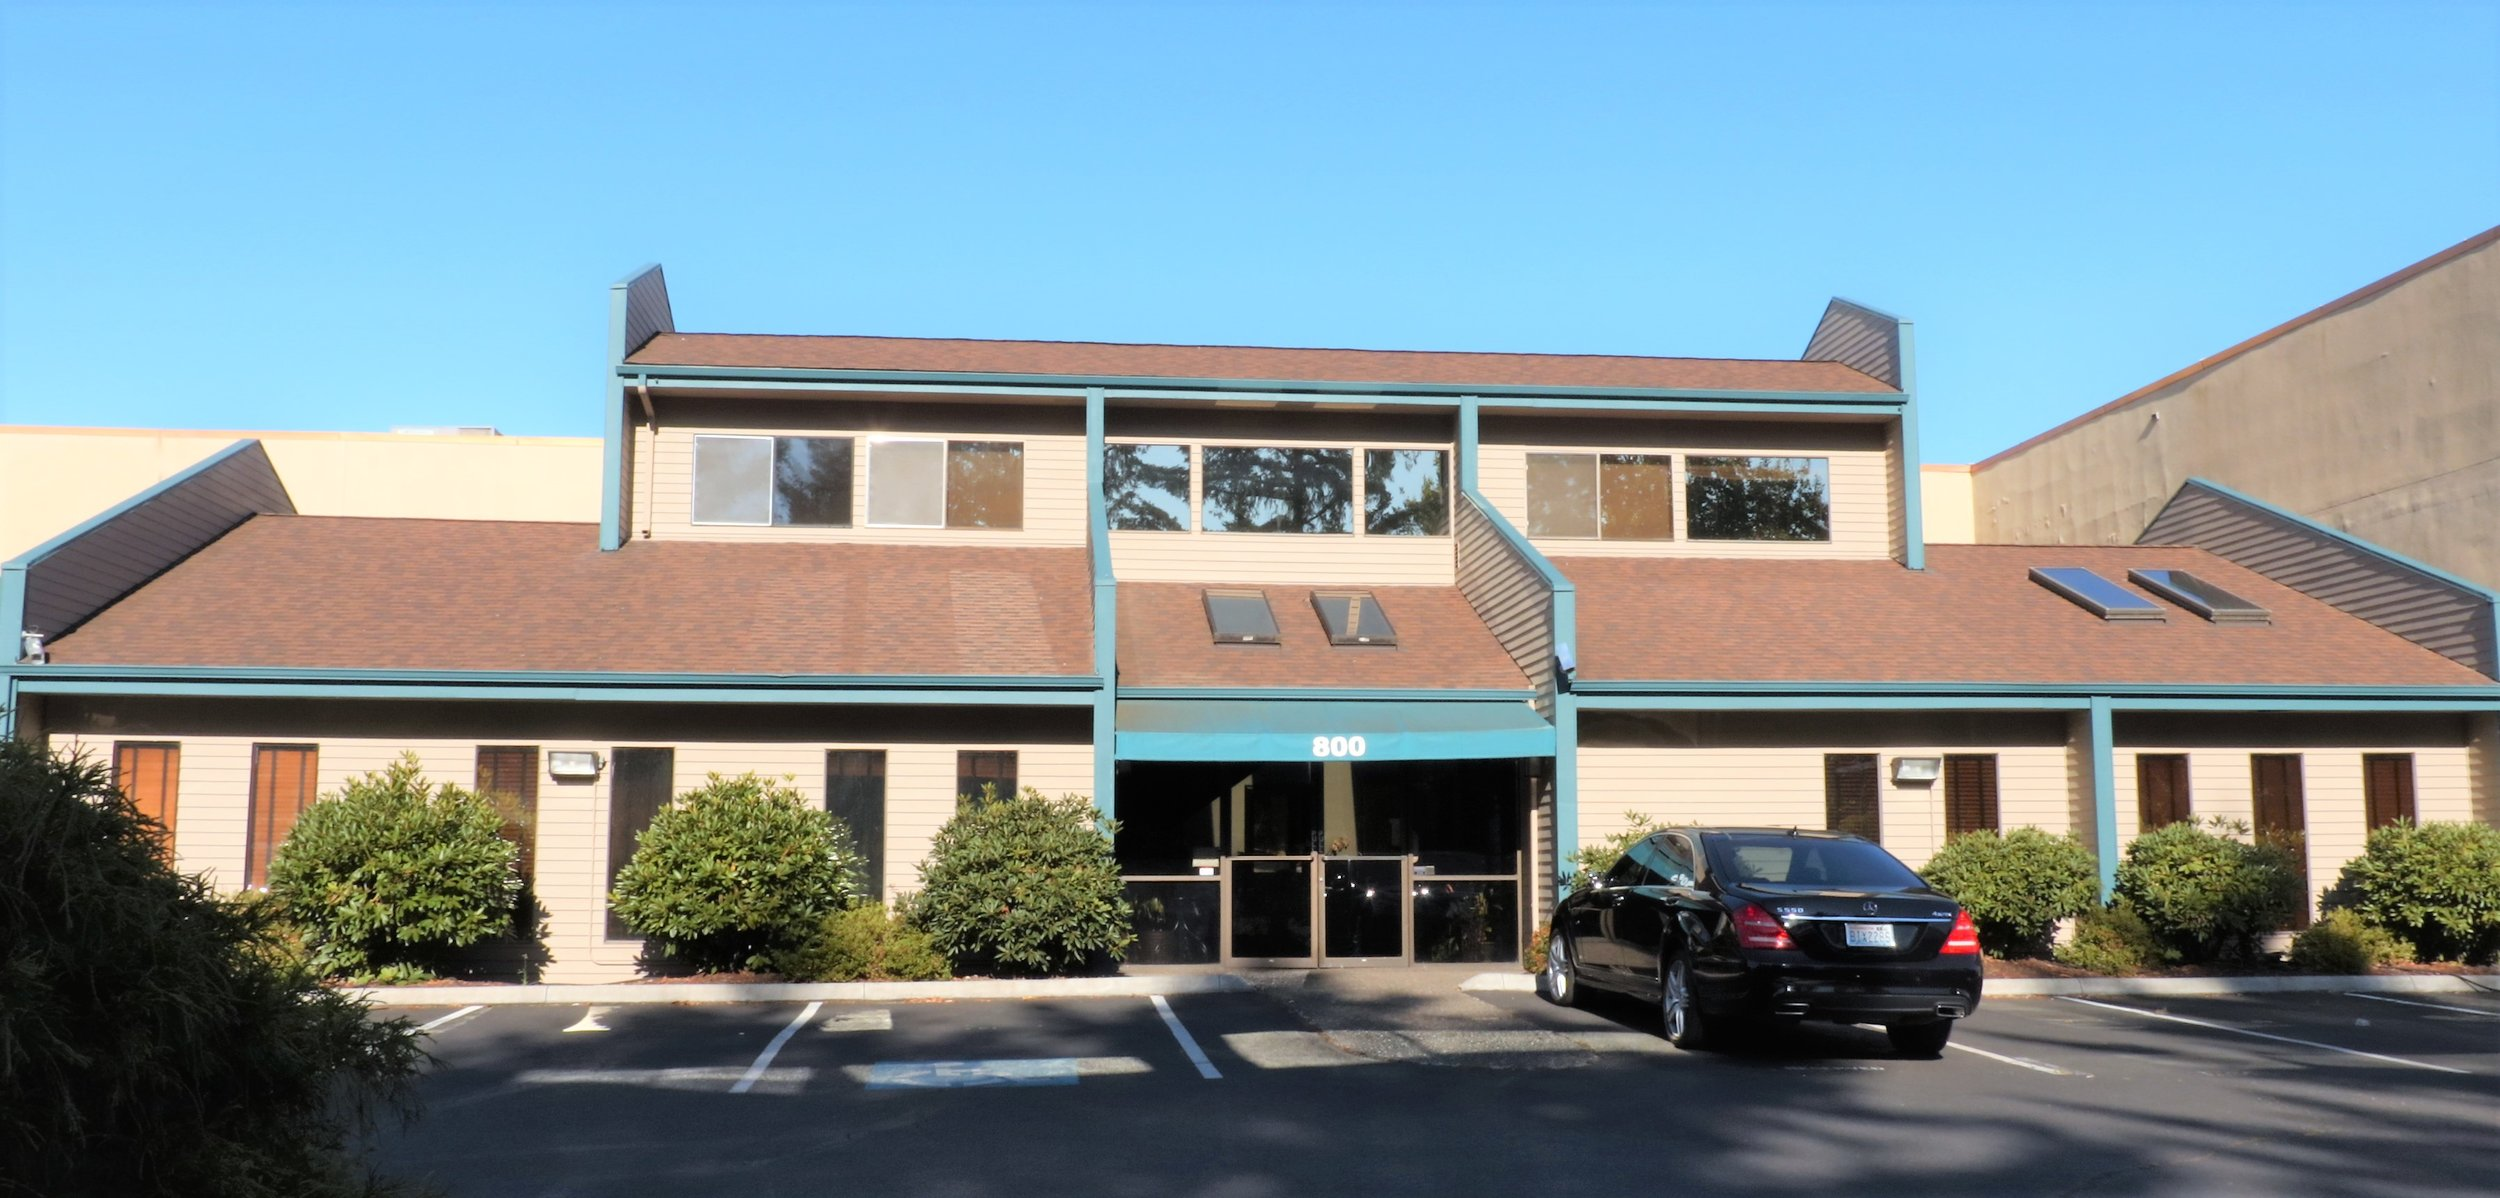 Our office, located at 800 N Devine Road in Vancouver, WA, since 1982.